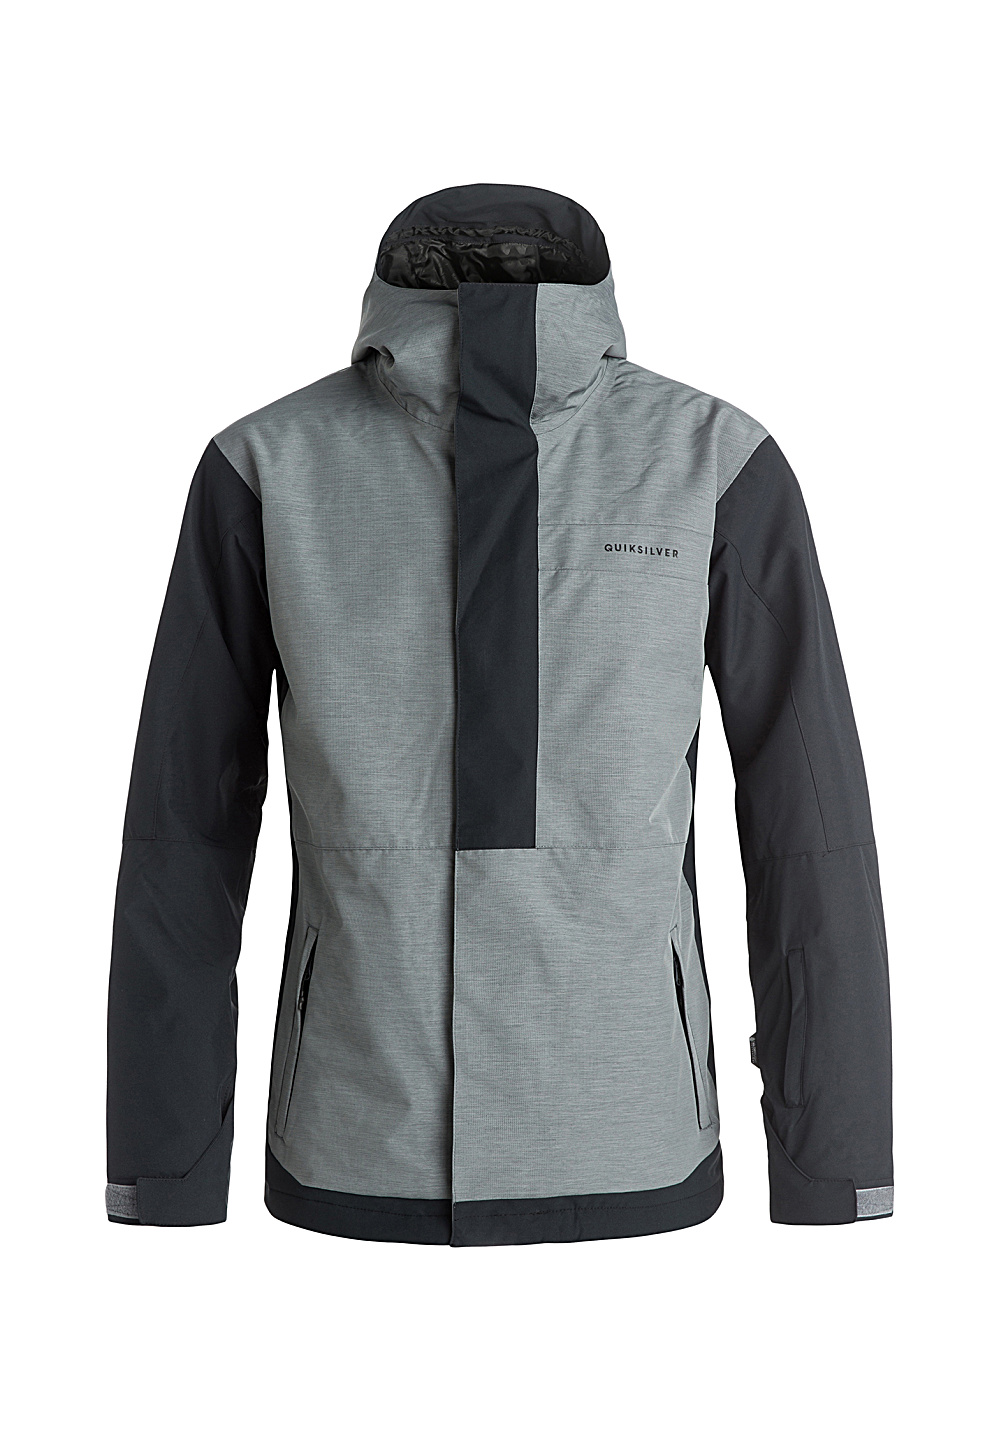 quiksilver ambition veste de snowboard pour homme gris planet sports. Black Bedroom Furniture Sets. Home Design Ideas